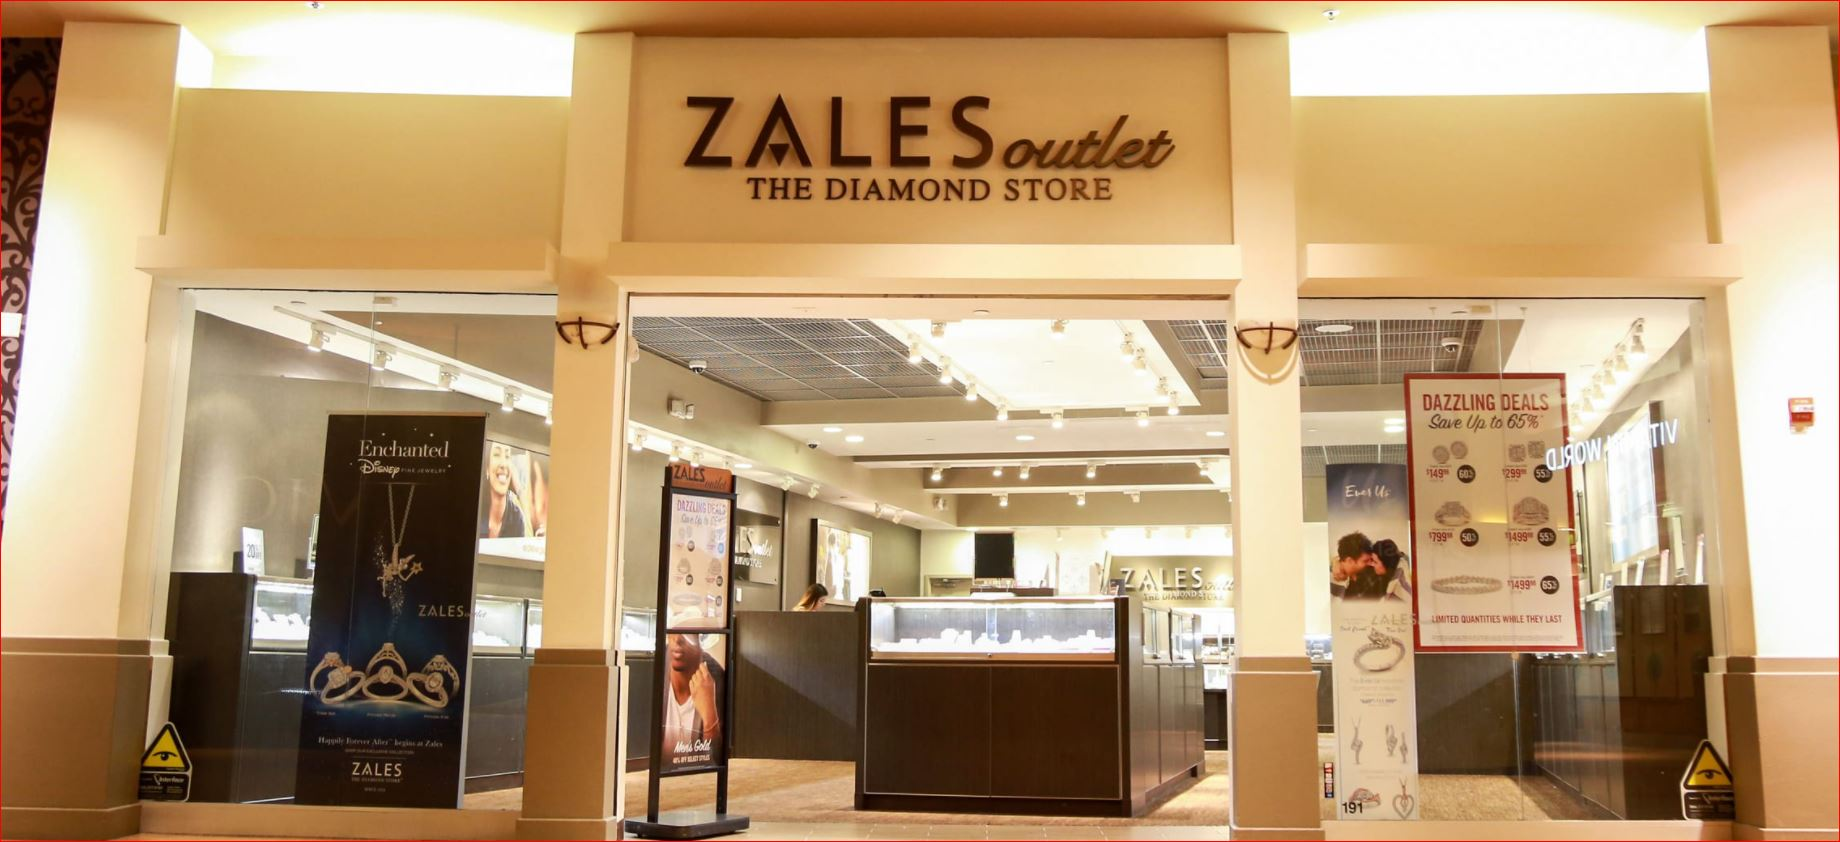 Zales Outlet Guest Feedback Survey